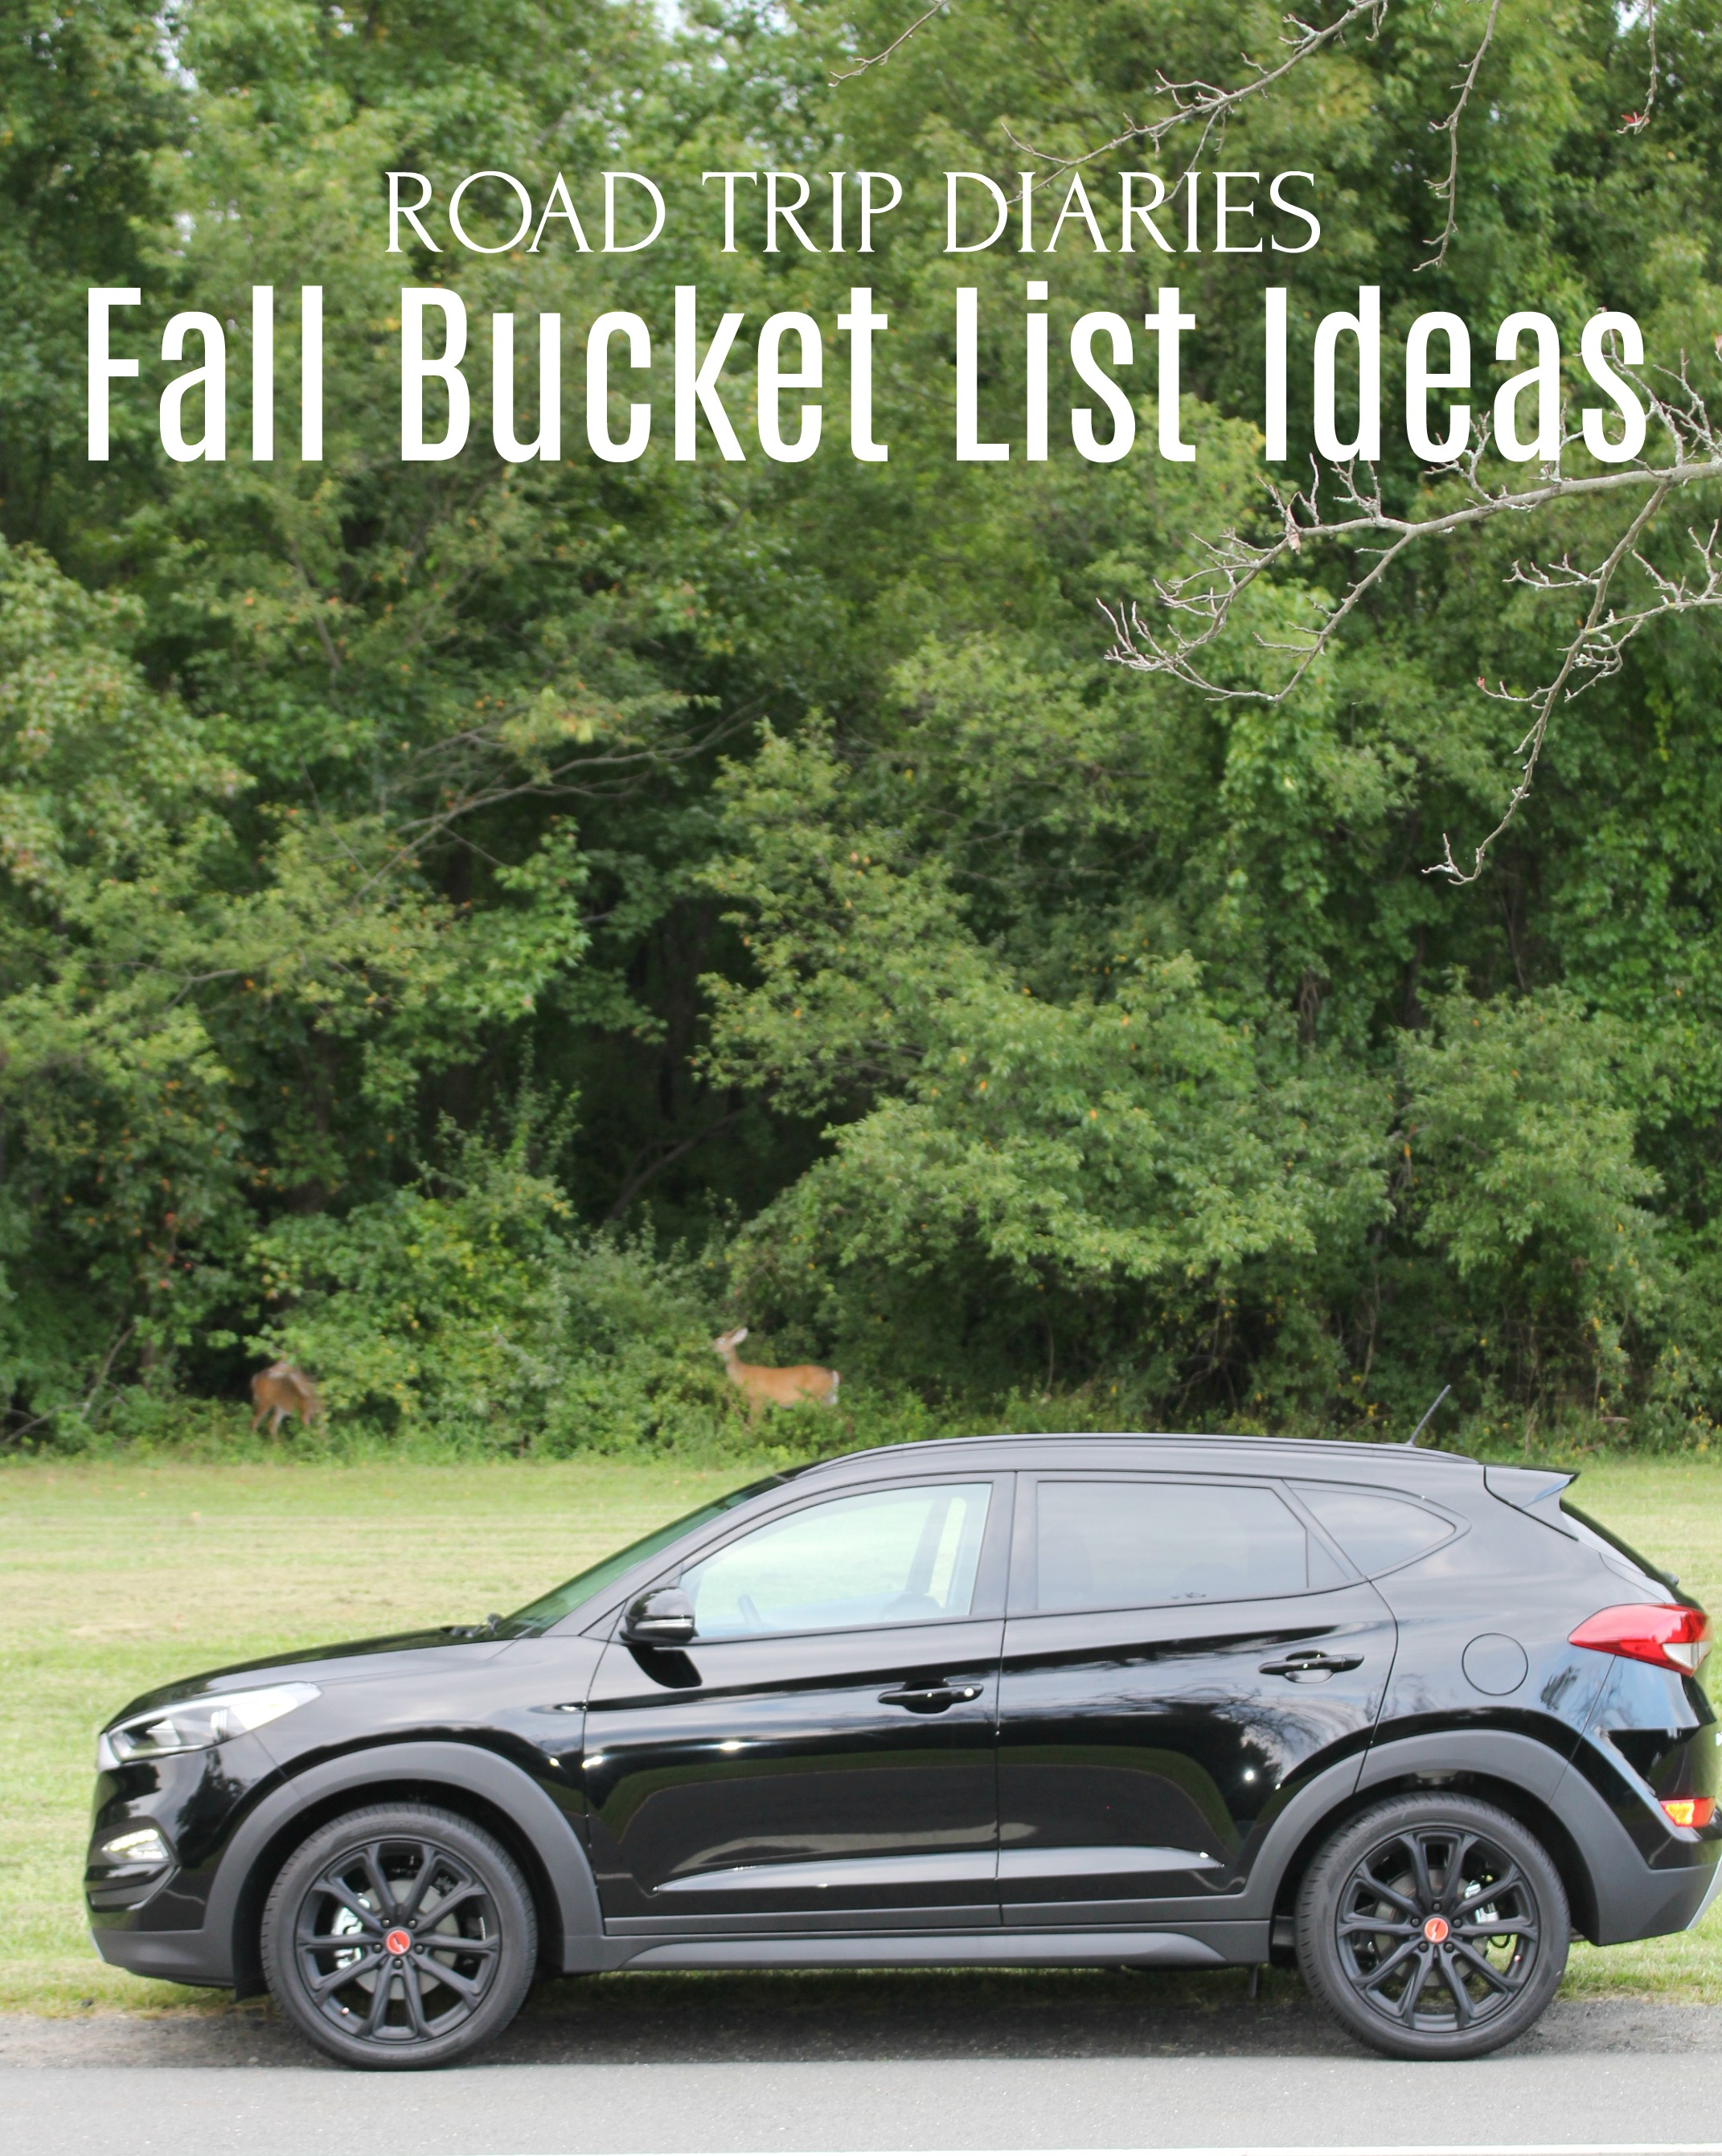 Road Trip Diaries - Fall Bucket List